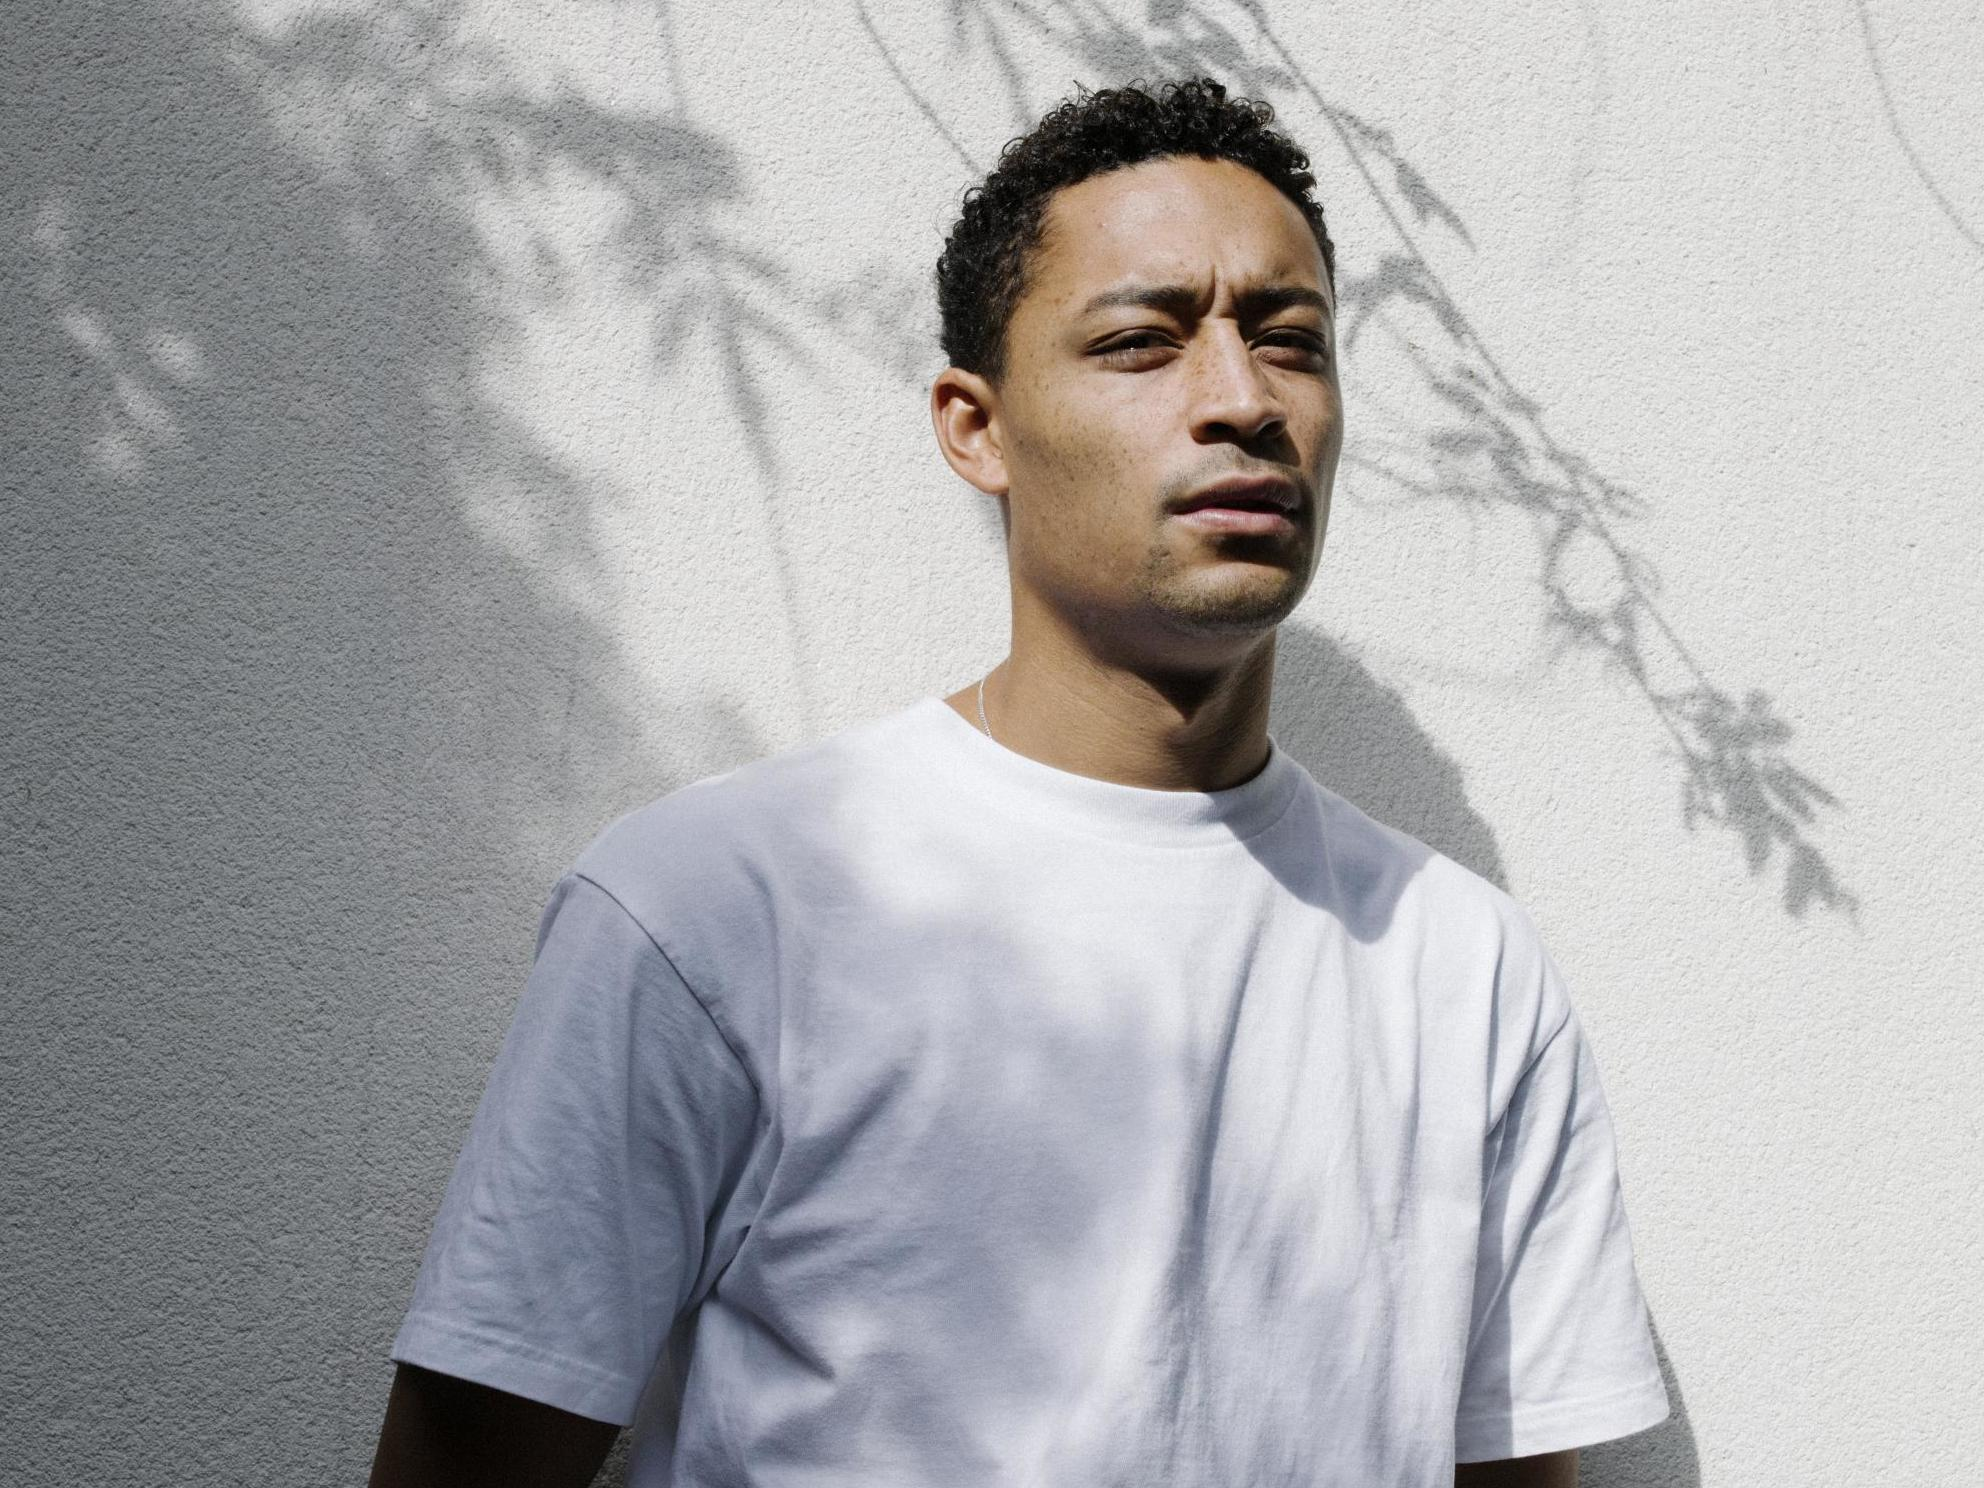 46ae40ee Loyle Carner interview: 'I'd rather have a real life than lots of girls and  drugs'